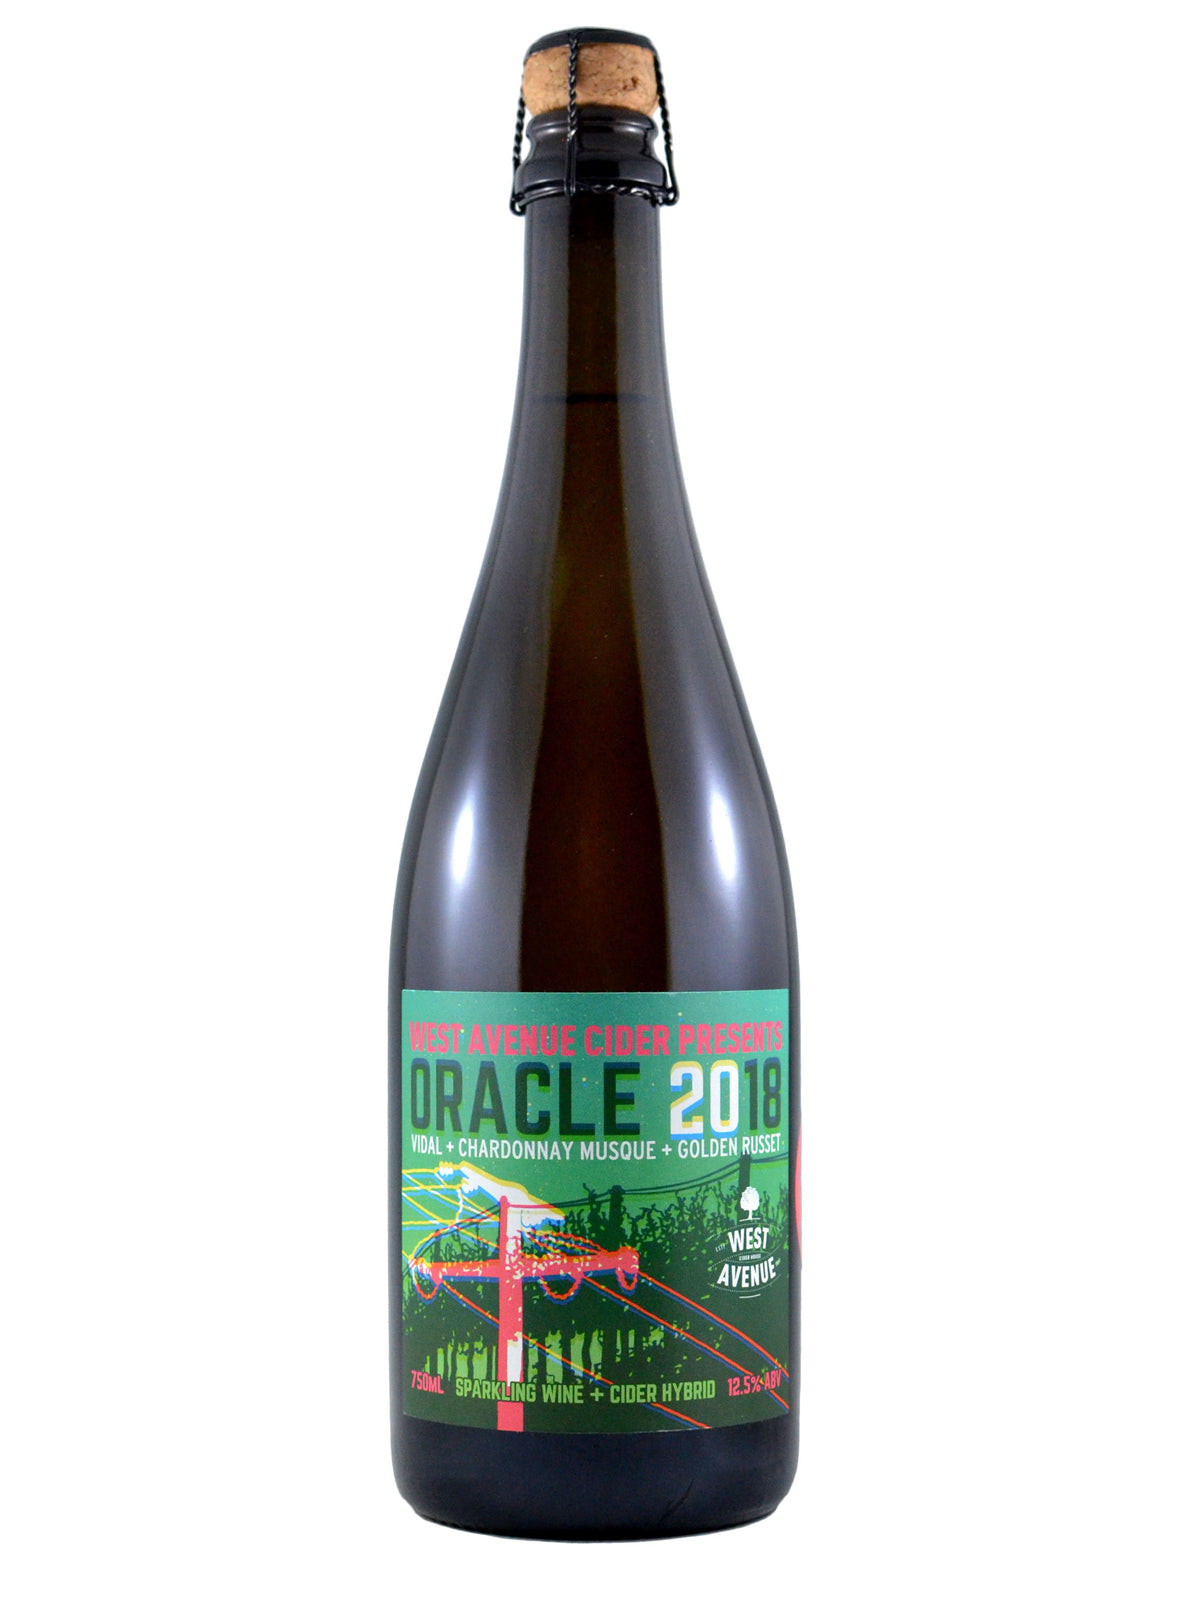 Oracle Sparkling Wine/Cider Hybrid 750ml, 12.5%ABV